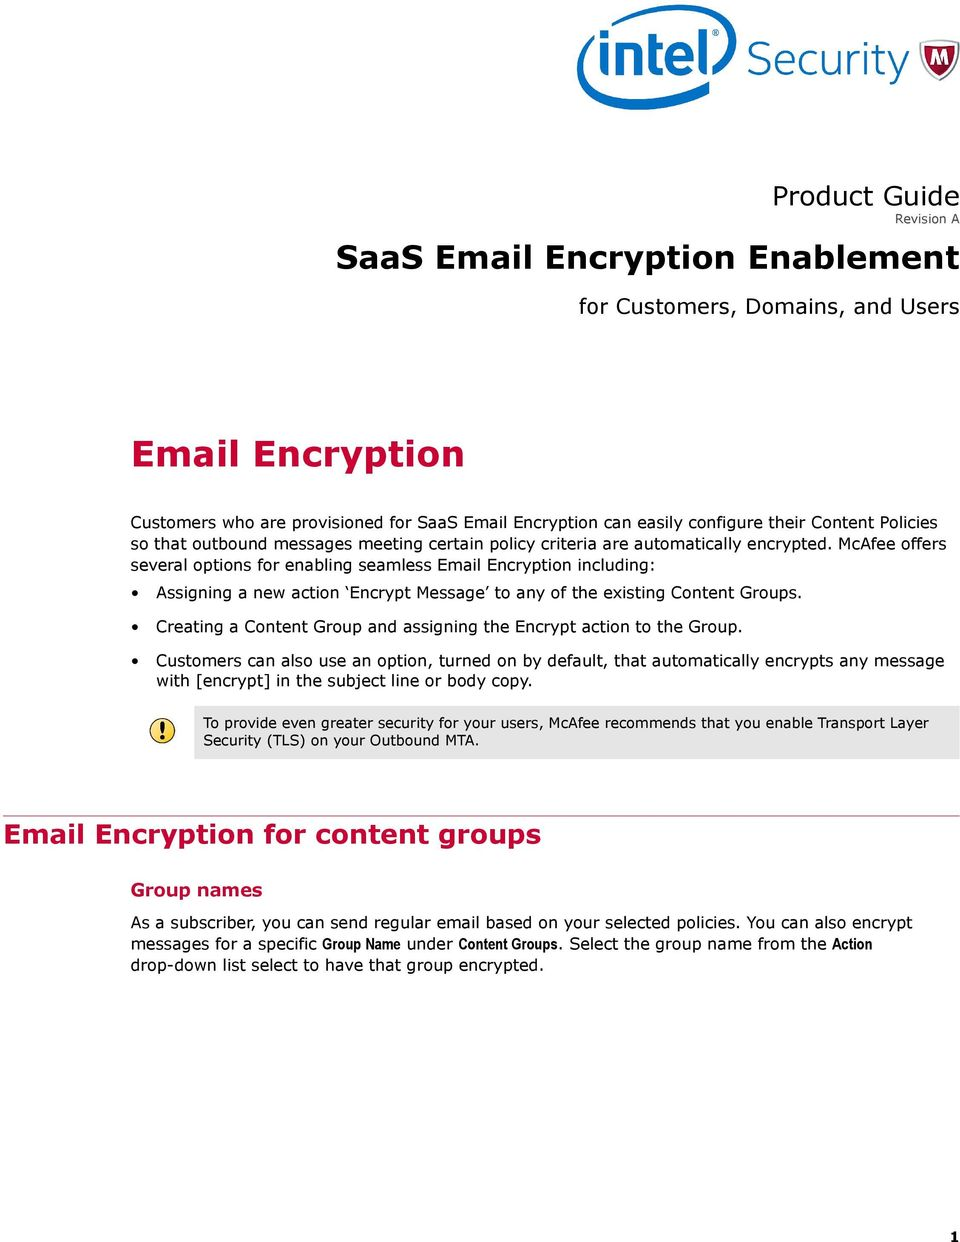 McAfee offers several options for enabling seamless Email Encryption including: Assigning a new action Encrypt Message to any of the existing Content Groups.